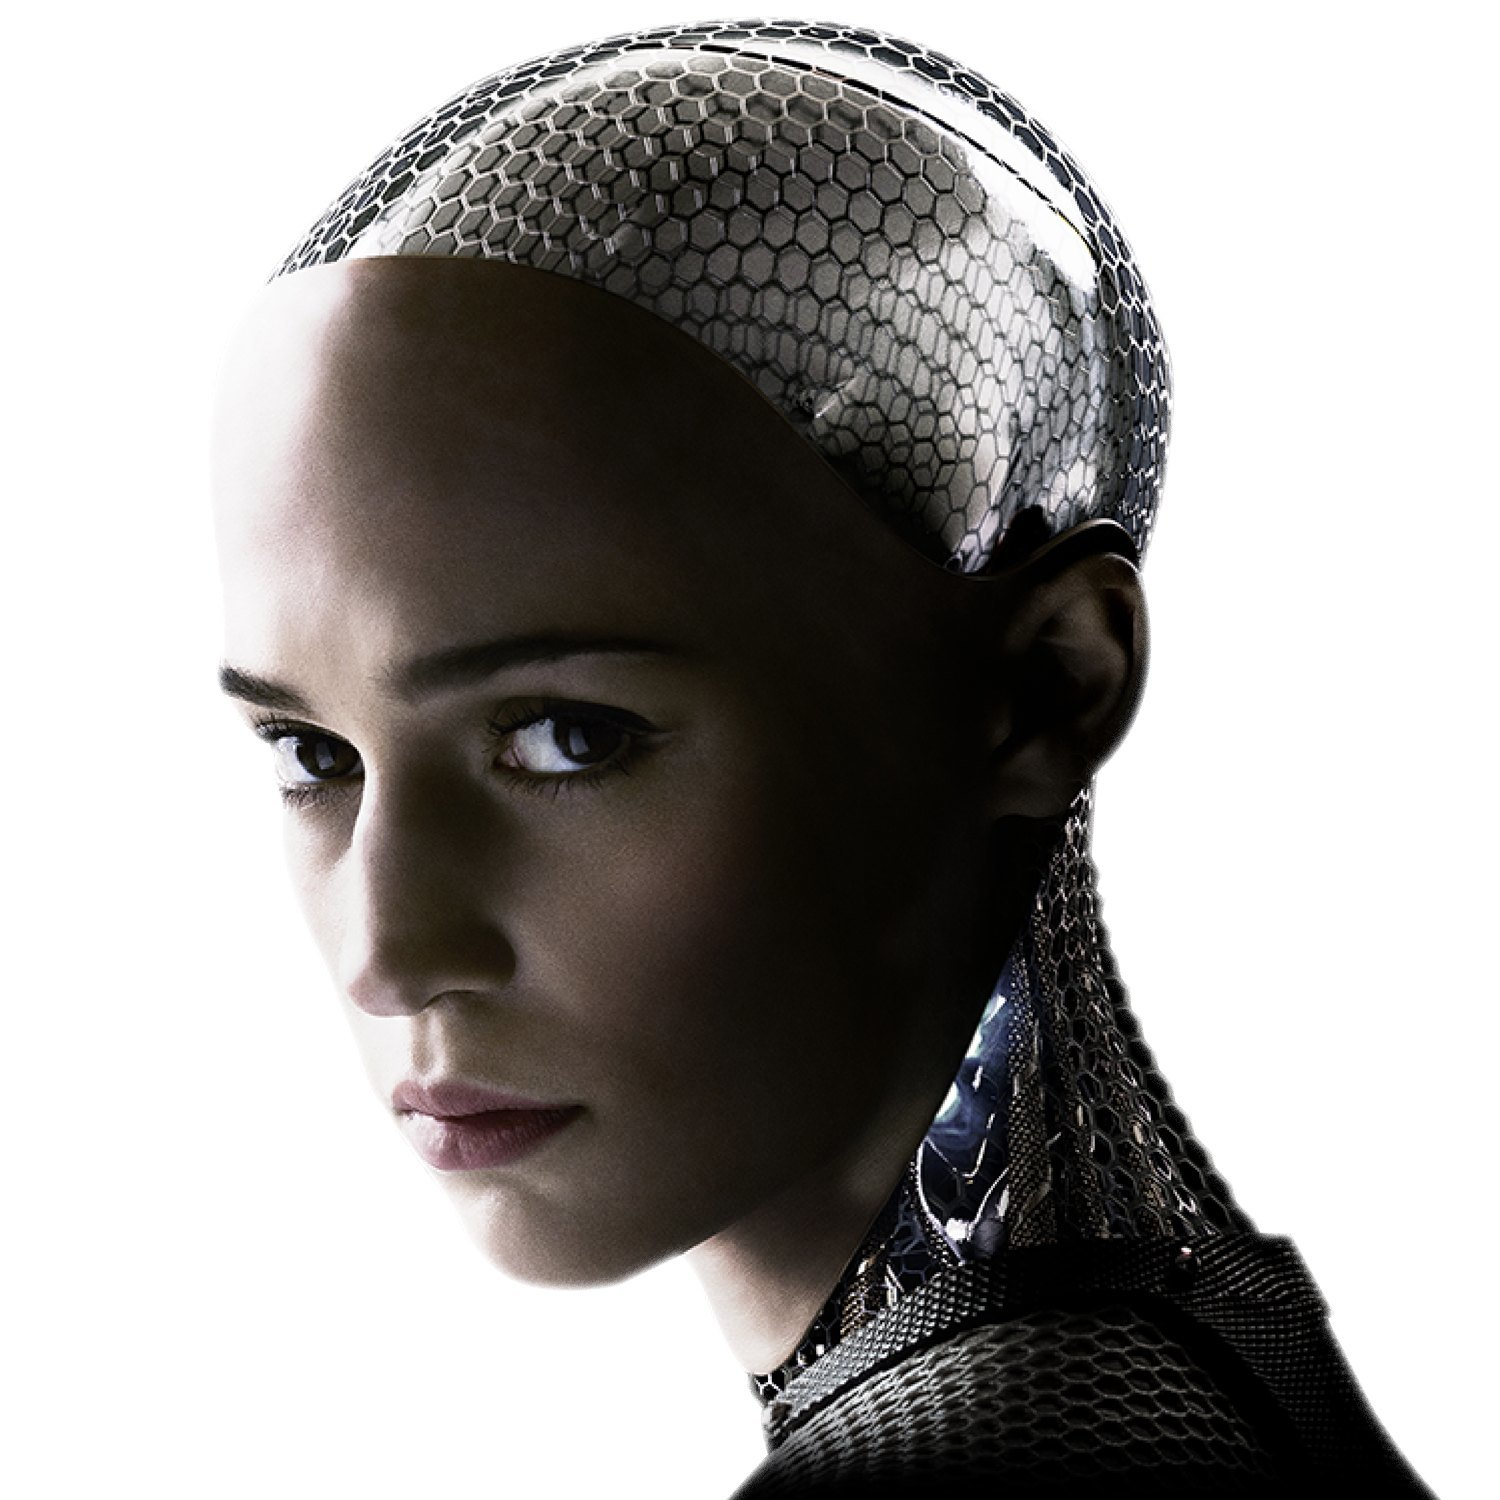 Artificial Sexuality: a roundtable discussion on screwing robots. Image 5.